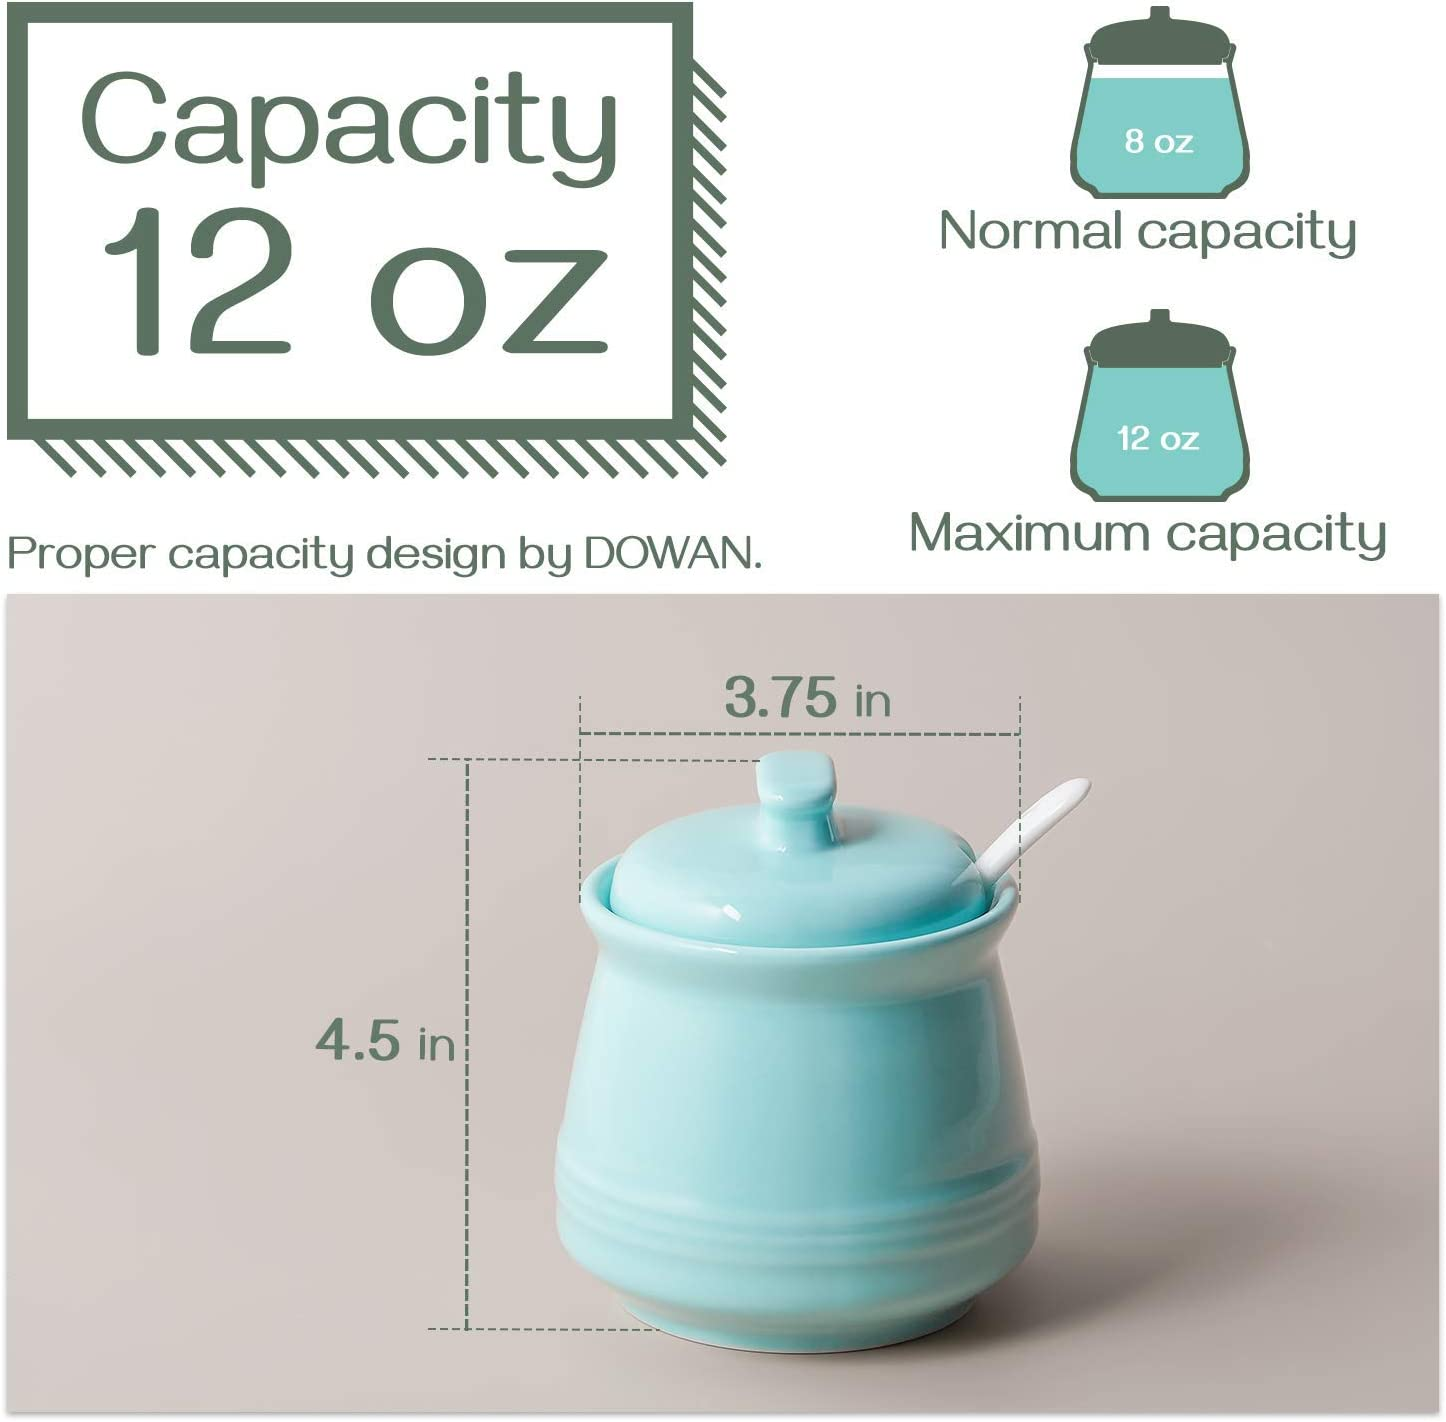 Turquoise 12 Ou Restaurant Sugar Bowl with Spoon and Lid 12 Ounce Ceramic Sugar Bowl with Lid Suit for Coffee Bar Product Image DOWAN Porcelain Sugar Bowl Coffee Bar Accessories Sugar Canister